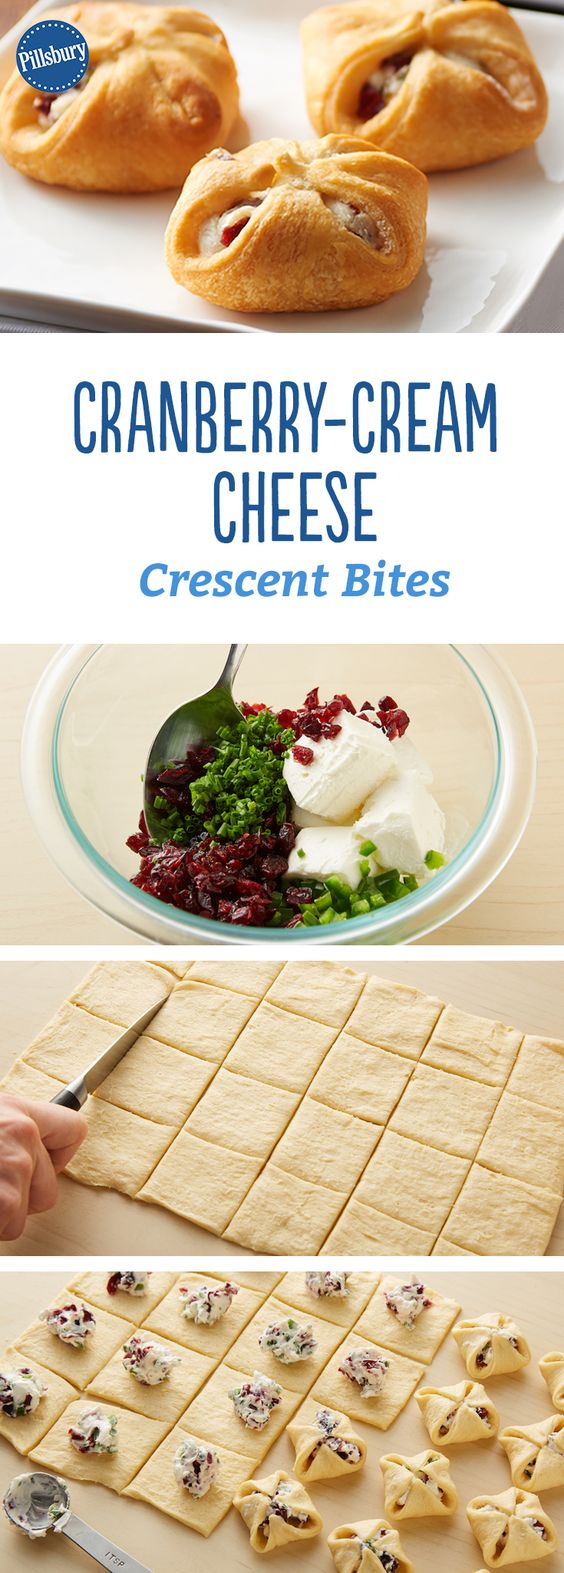 Cranberry-Cream Cheese Crescent Bites: These one-bite cranberry and jalapeño-cream cheese crescent appetizers are easy to make and sure to be a